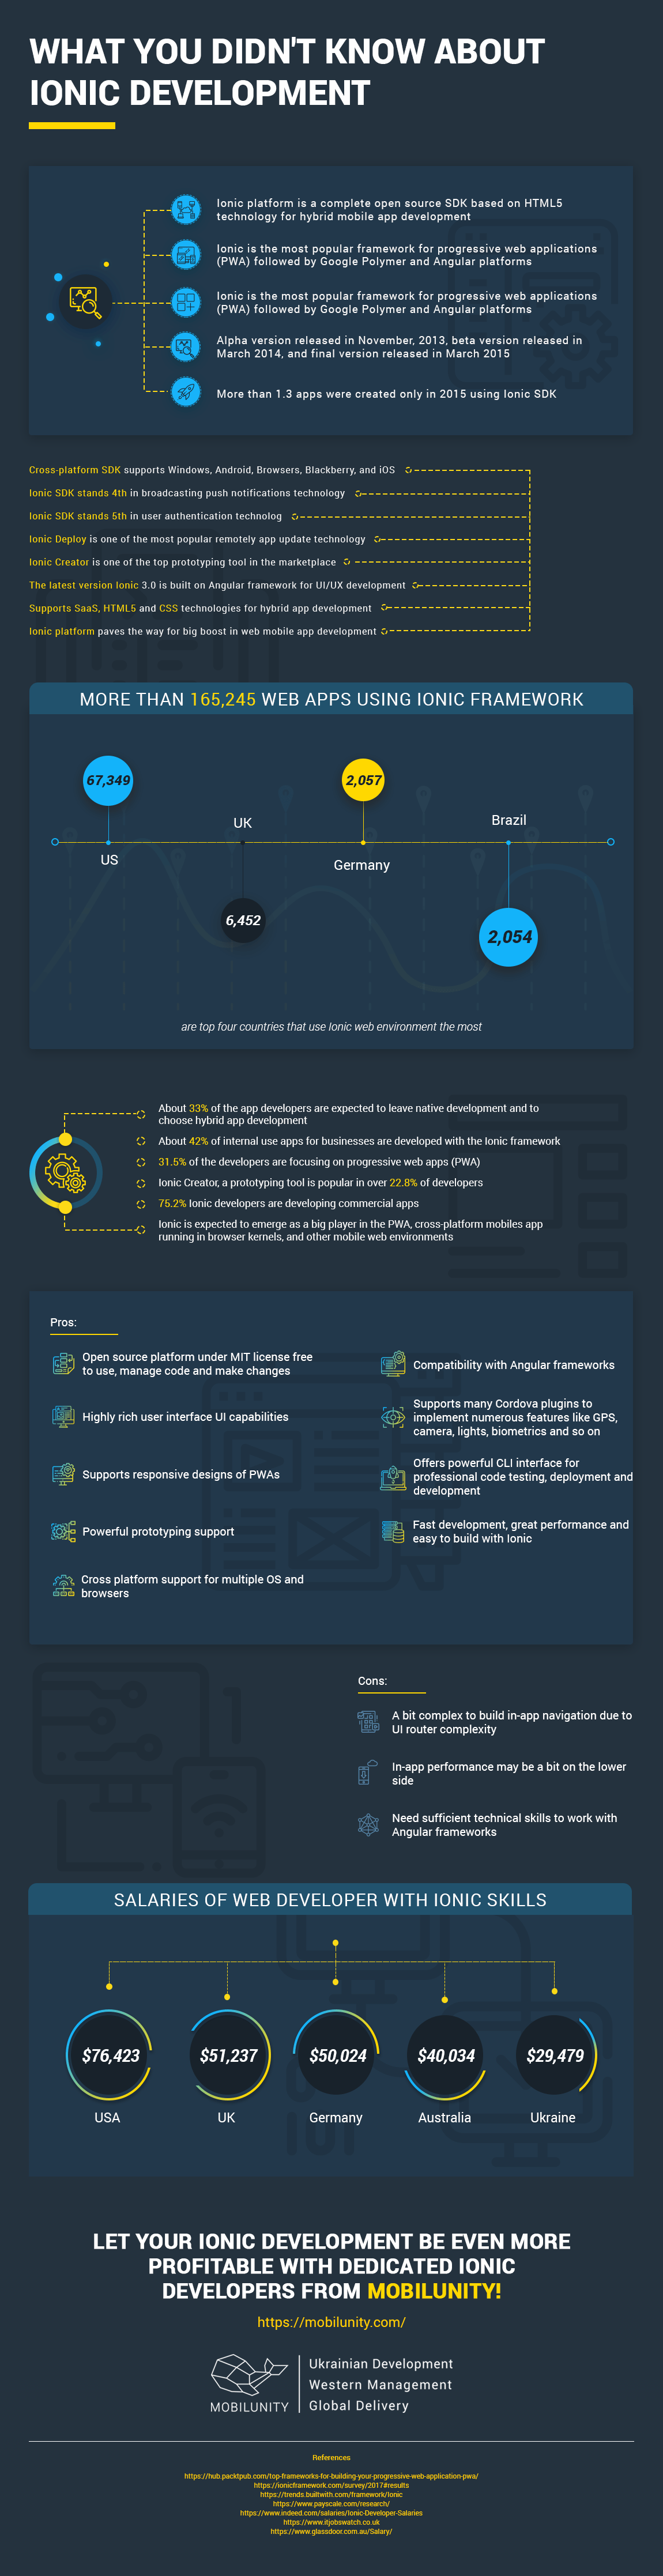 ionic development infographic